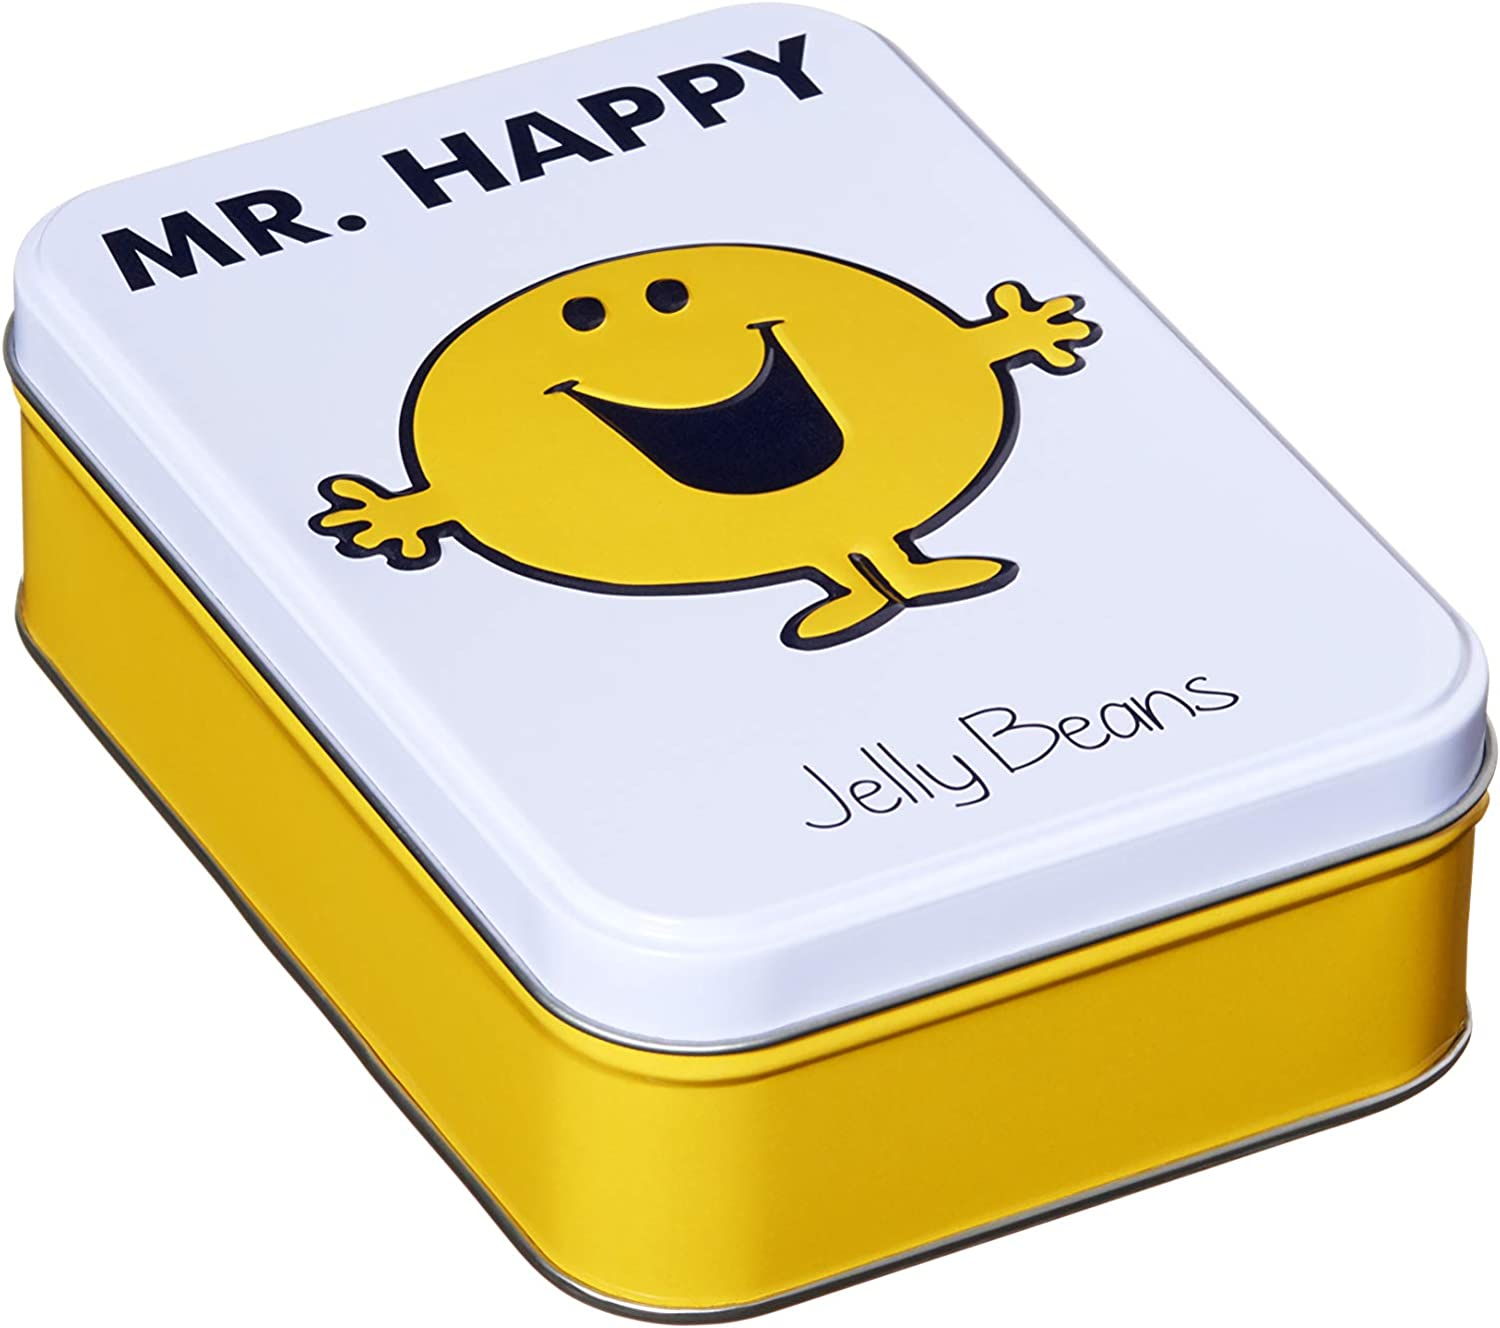 Mr. Happy Gift Tin filled with Jelly Beans. Guaranteed to put a smile on someone's face!